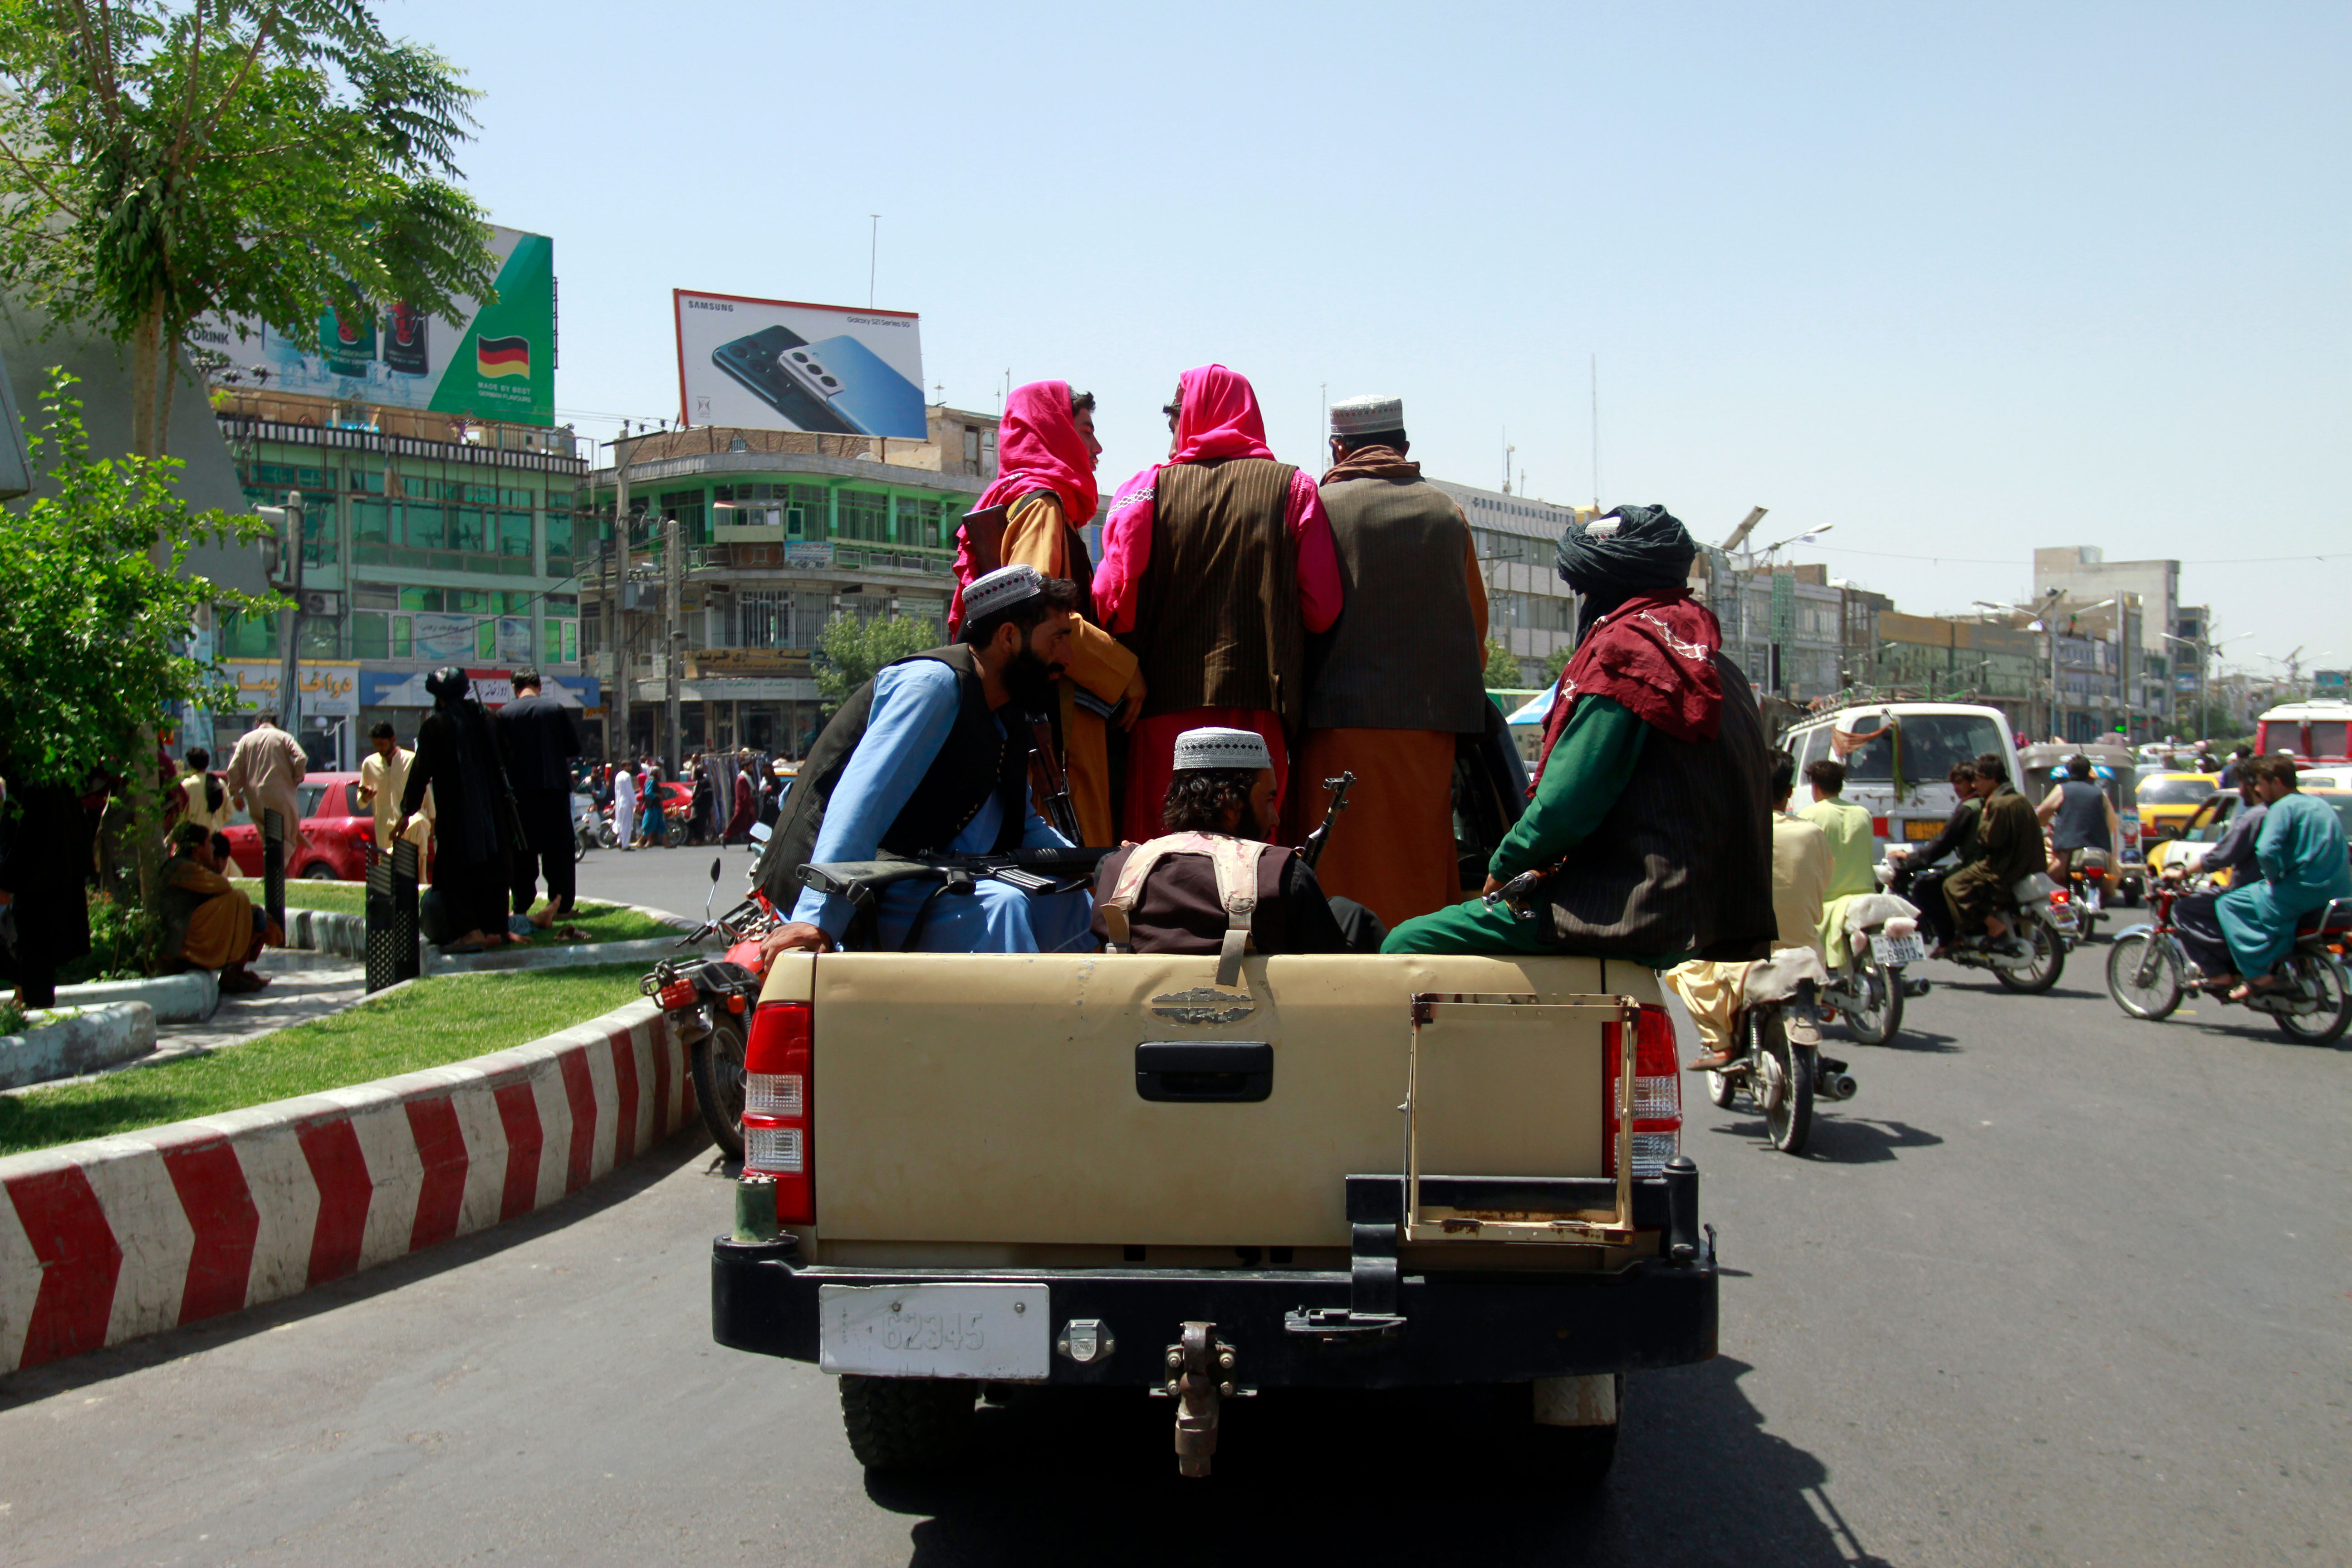 Taliban fighters sit on the back of a vehicle in Herat, Afghanistan, on August 14, 2021.